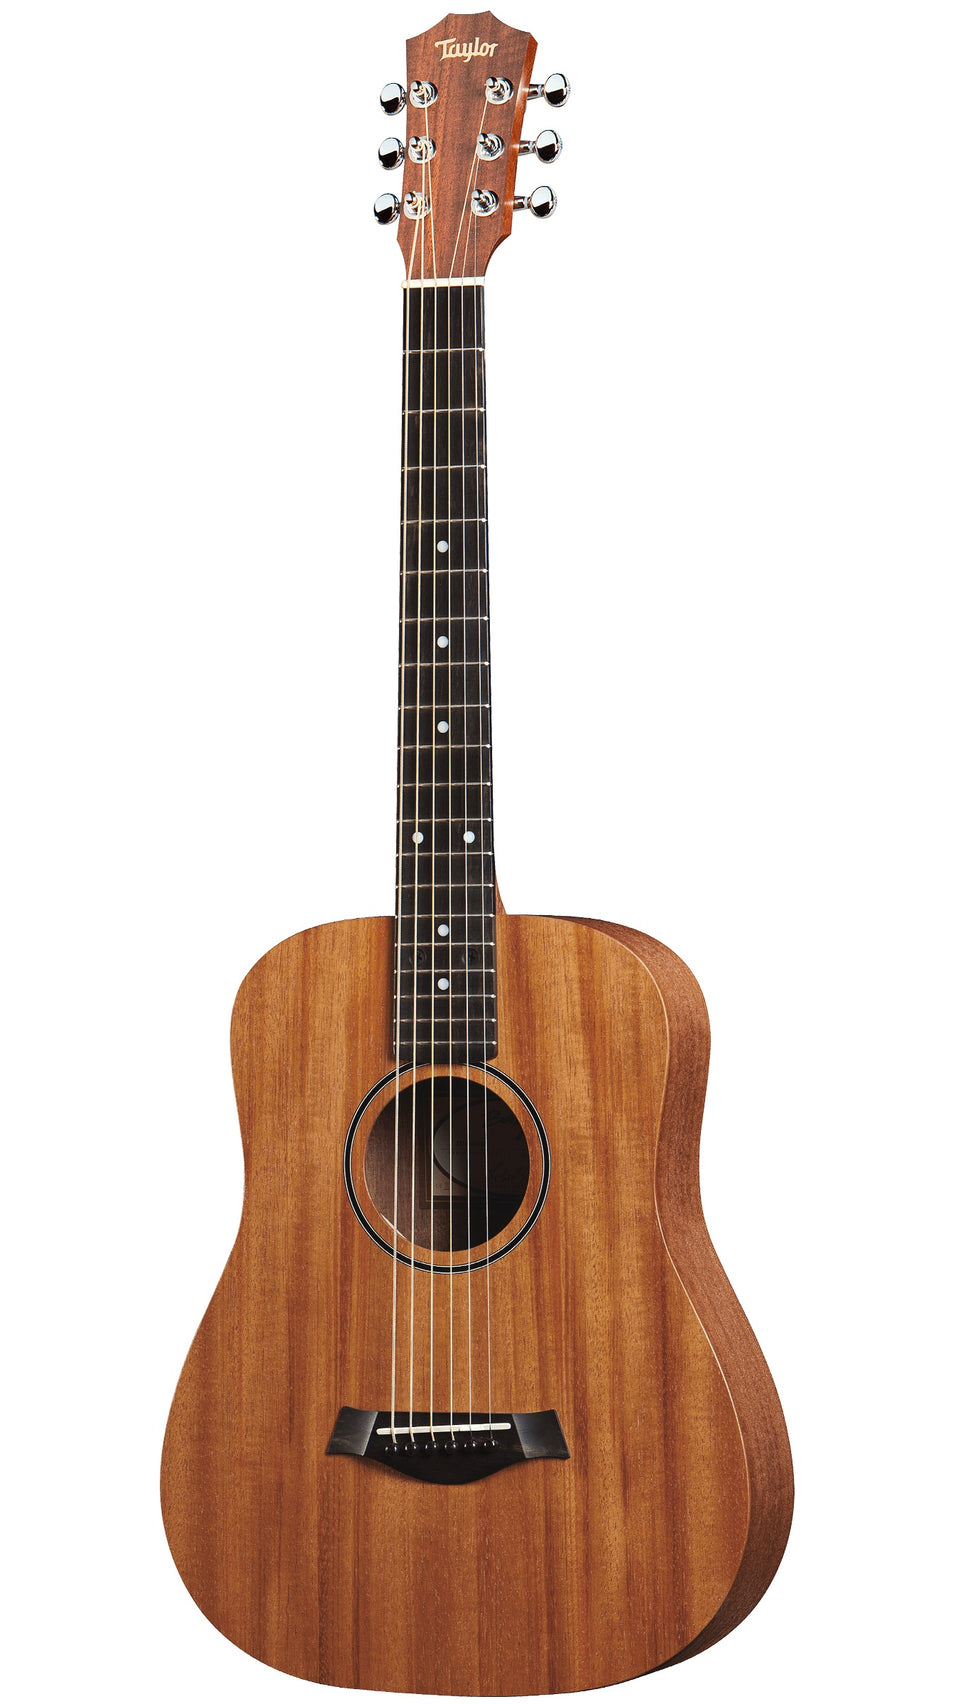 Taylor BT2 Baby Mahogany 3/4 Scale Acoustic Guitar